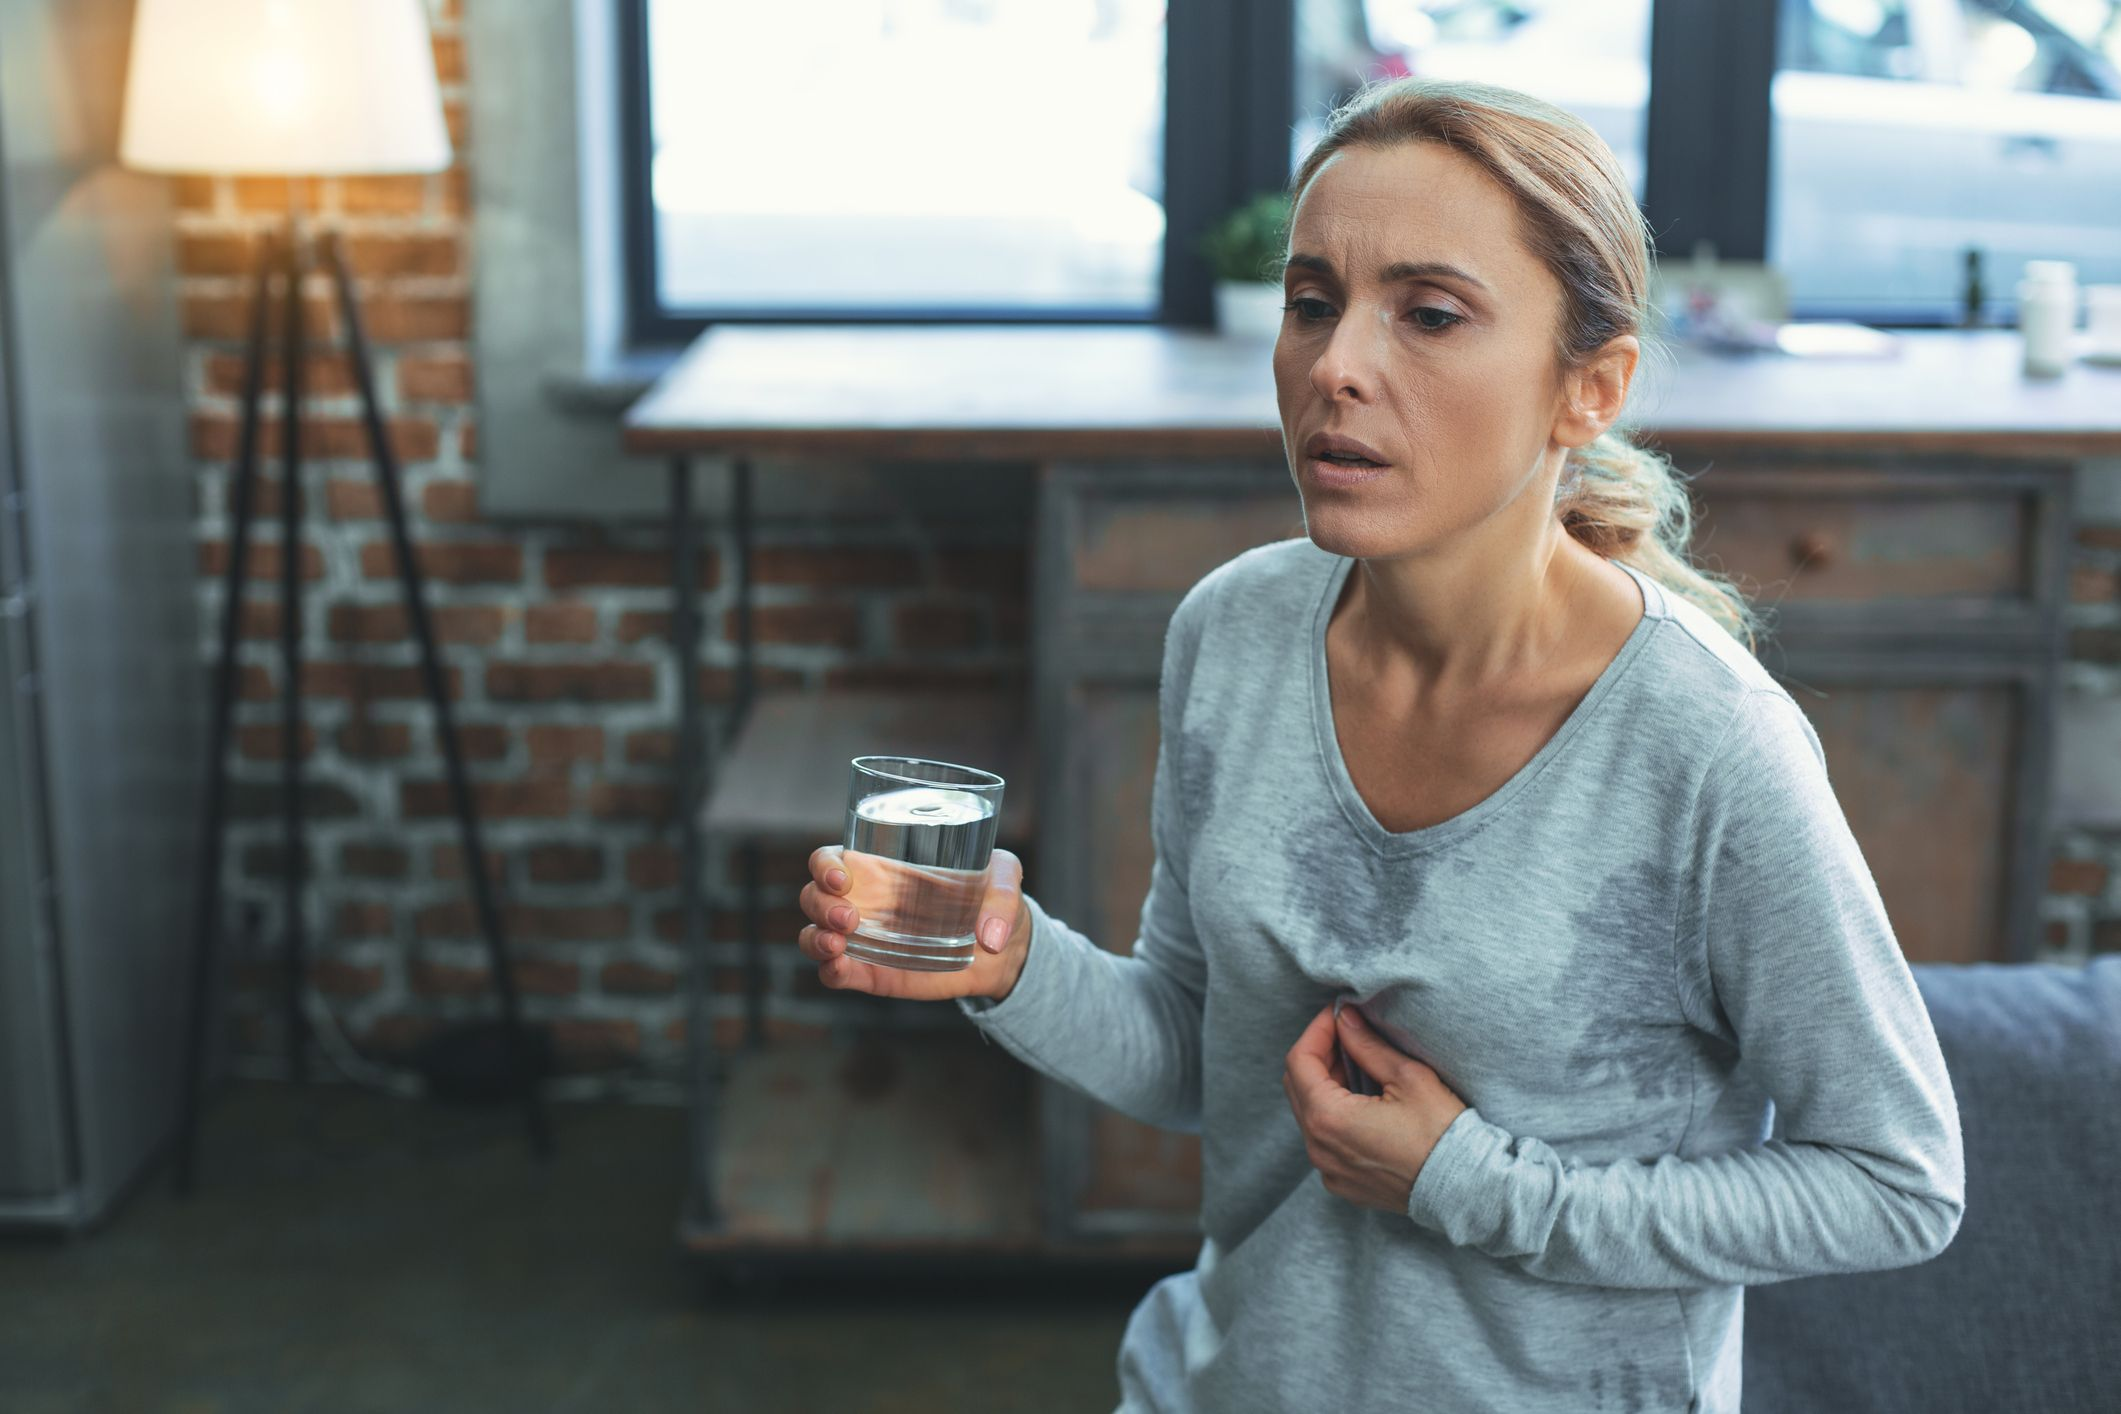 Why Am I Always Hot? 7 Reasons You Feel Overheated All the ...